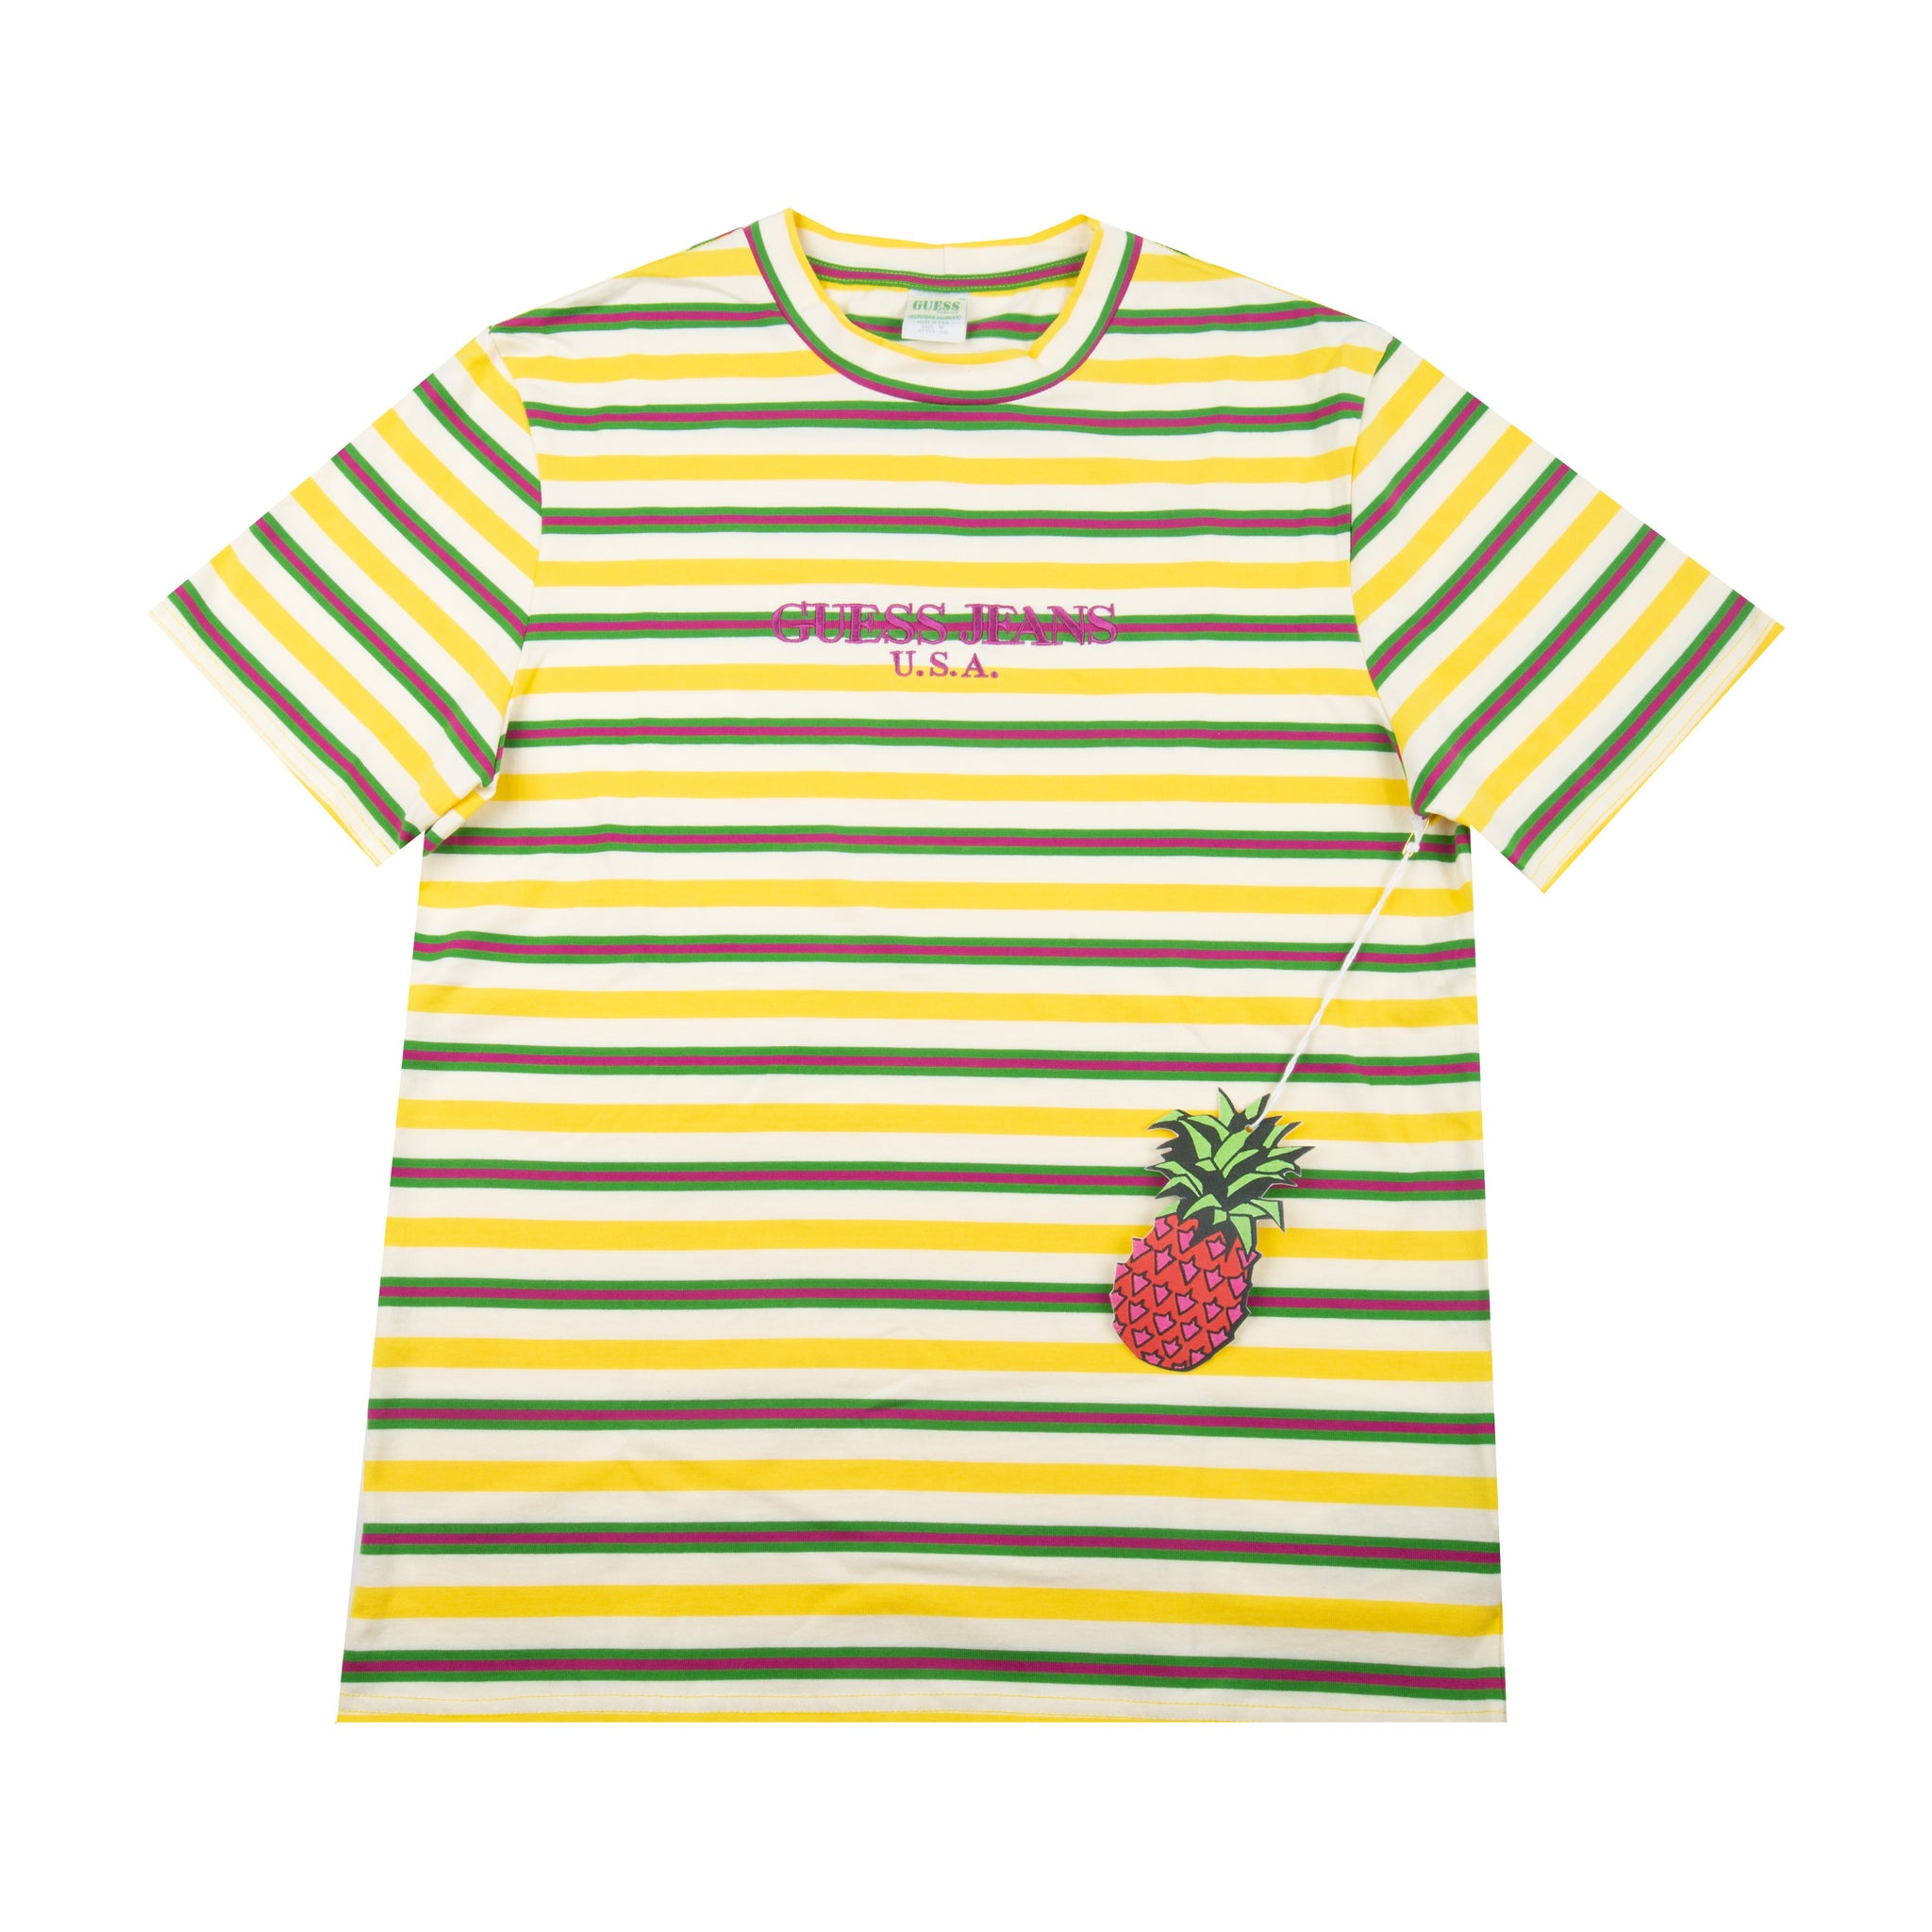 Guess Jeans Pineapple Striped Tee